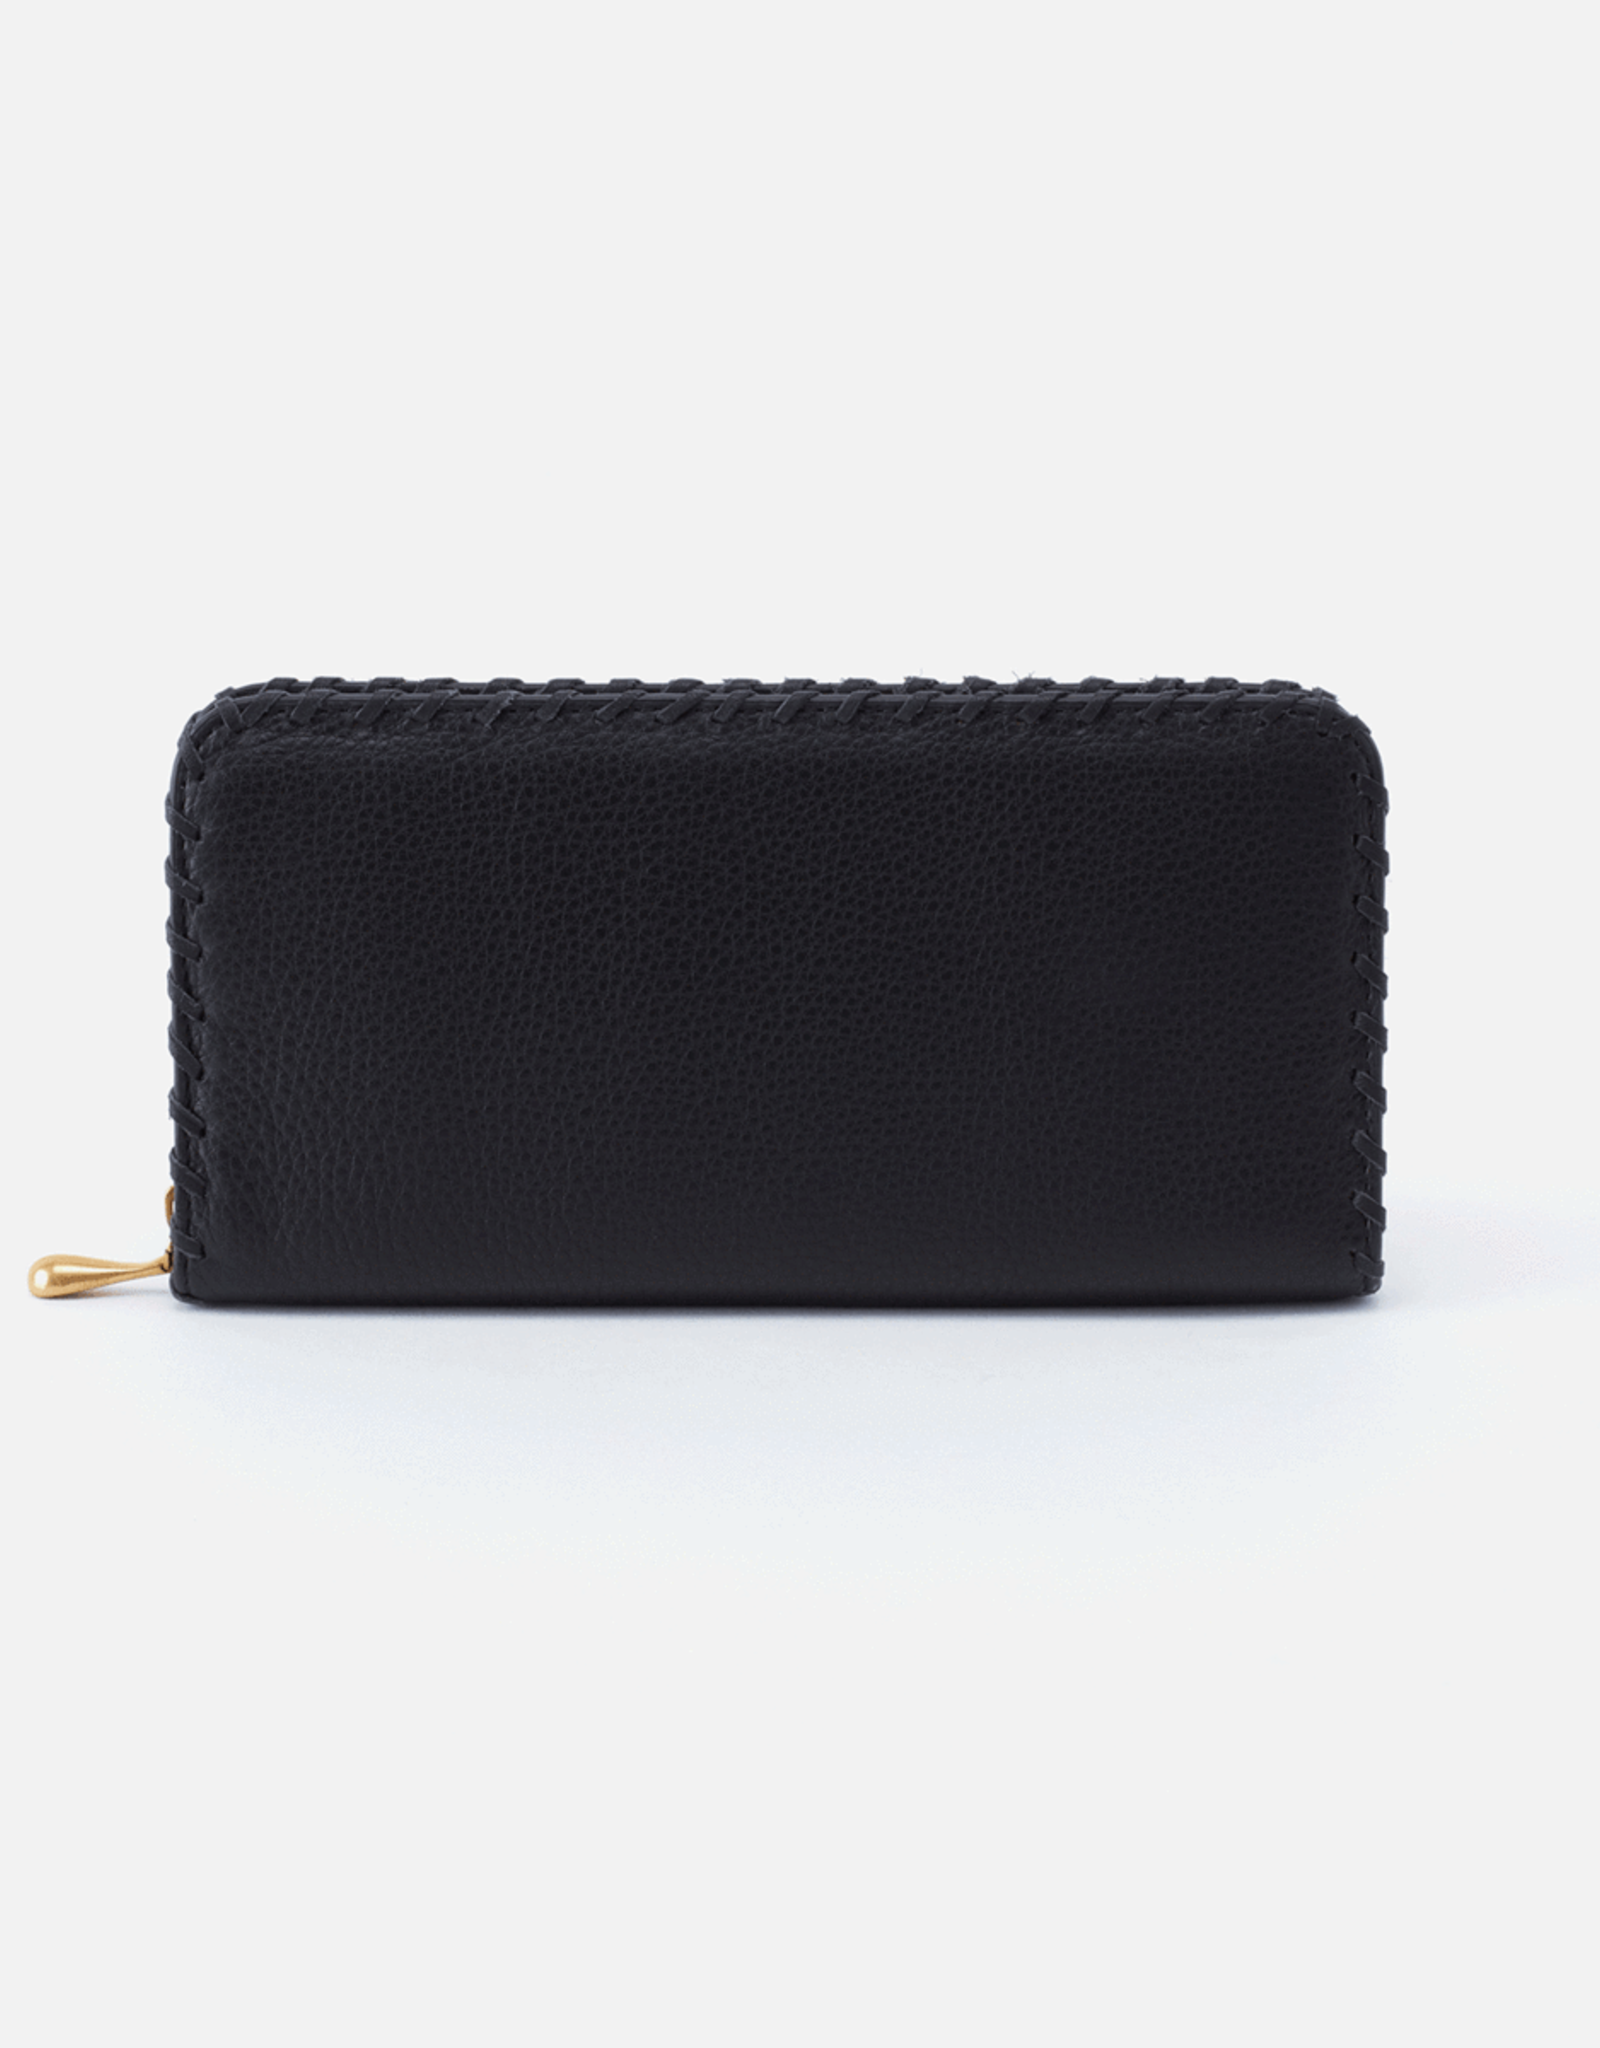 HOBO Wynn Wallet - Black